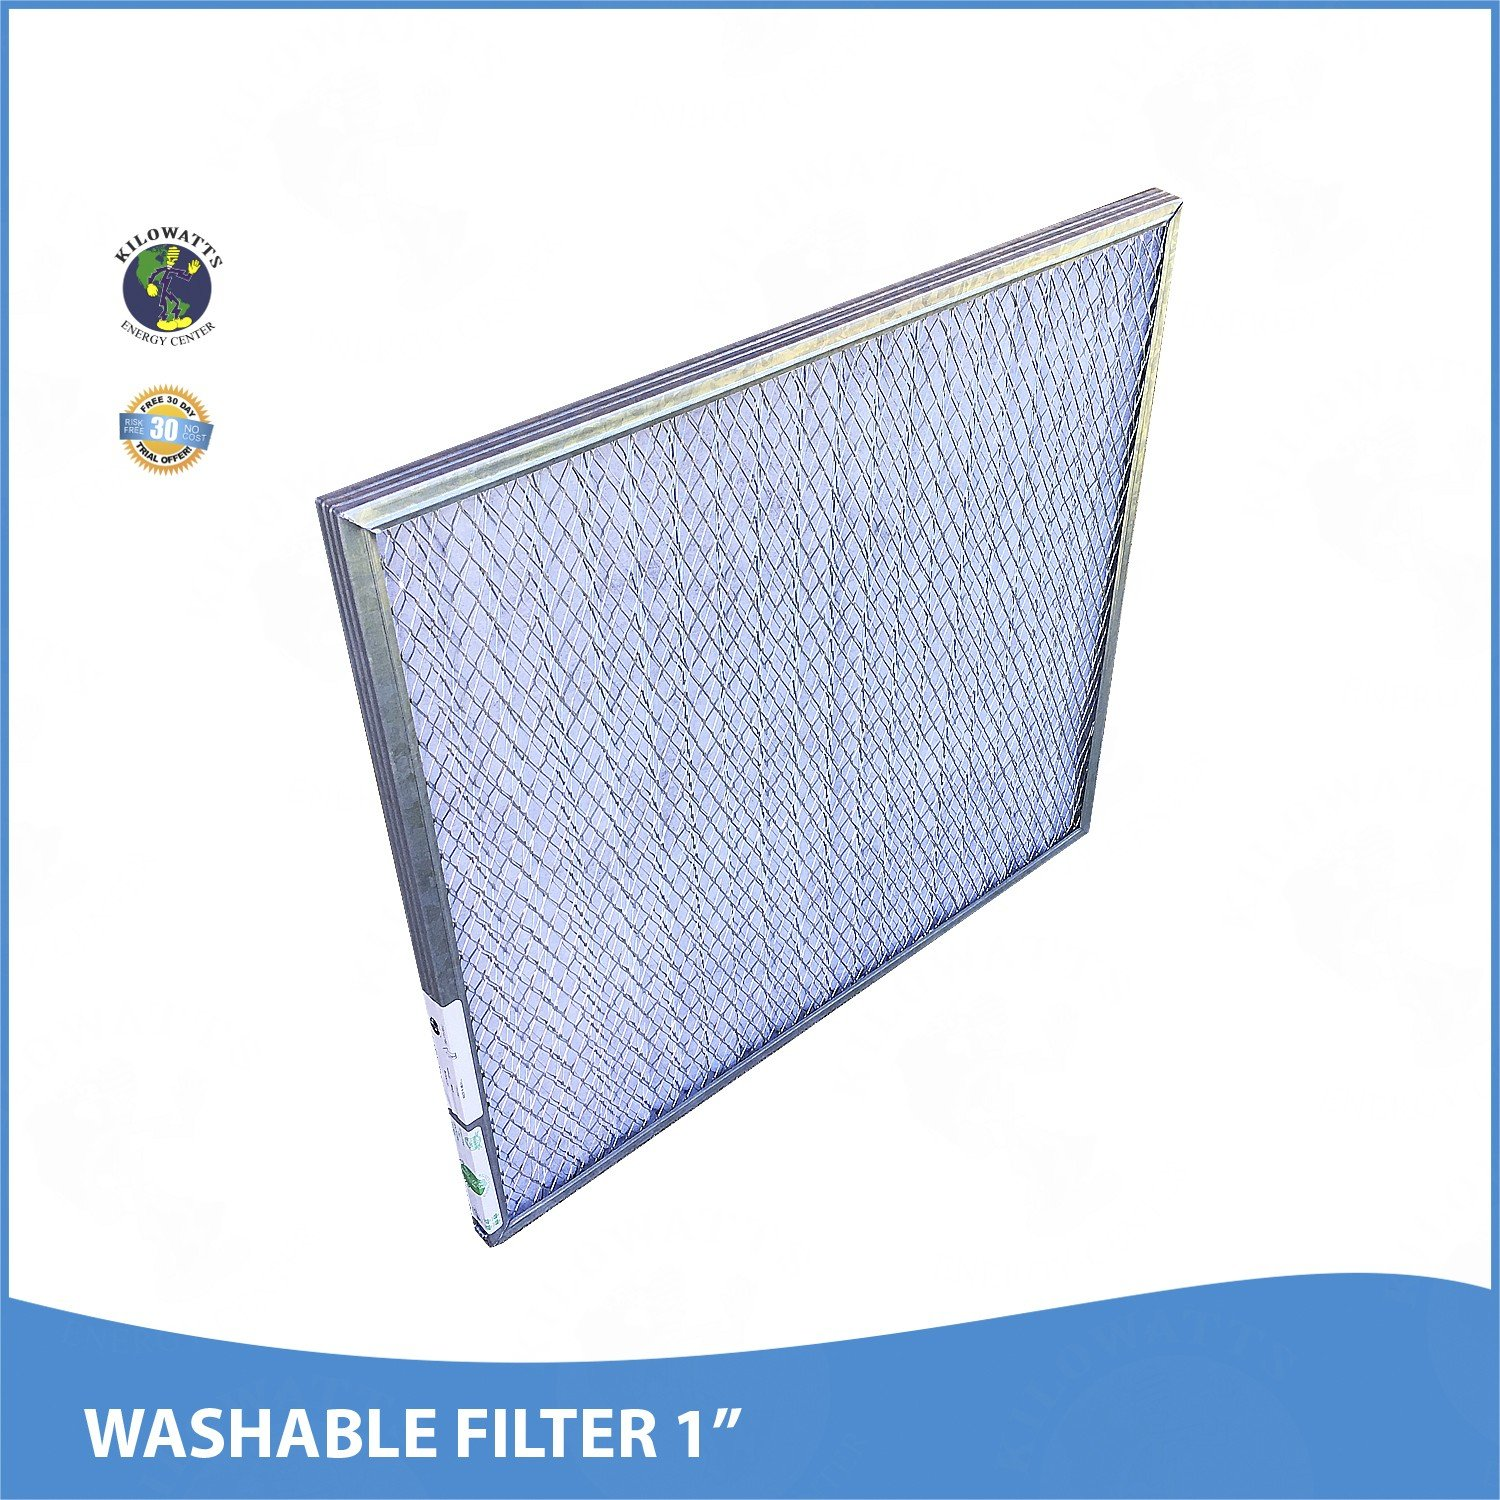 24x30x1 Washable Permanent A/C Furnace Air Filter by Kilowatts Energy Center (Image #2)